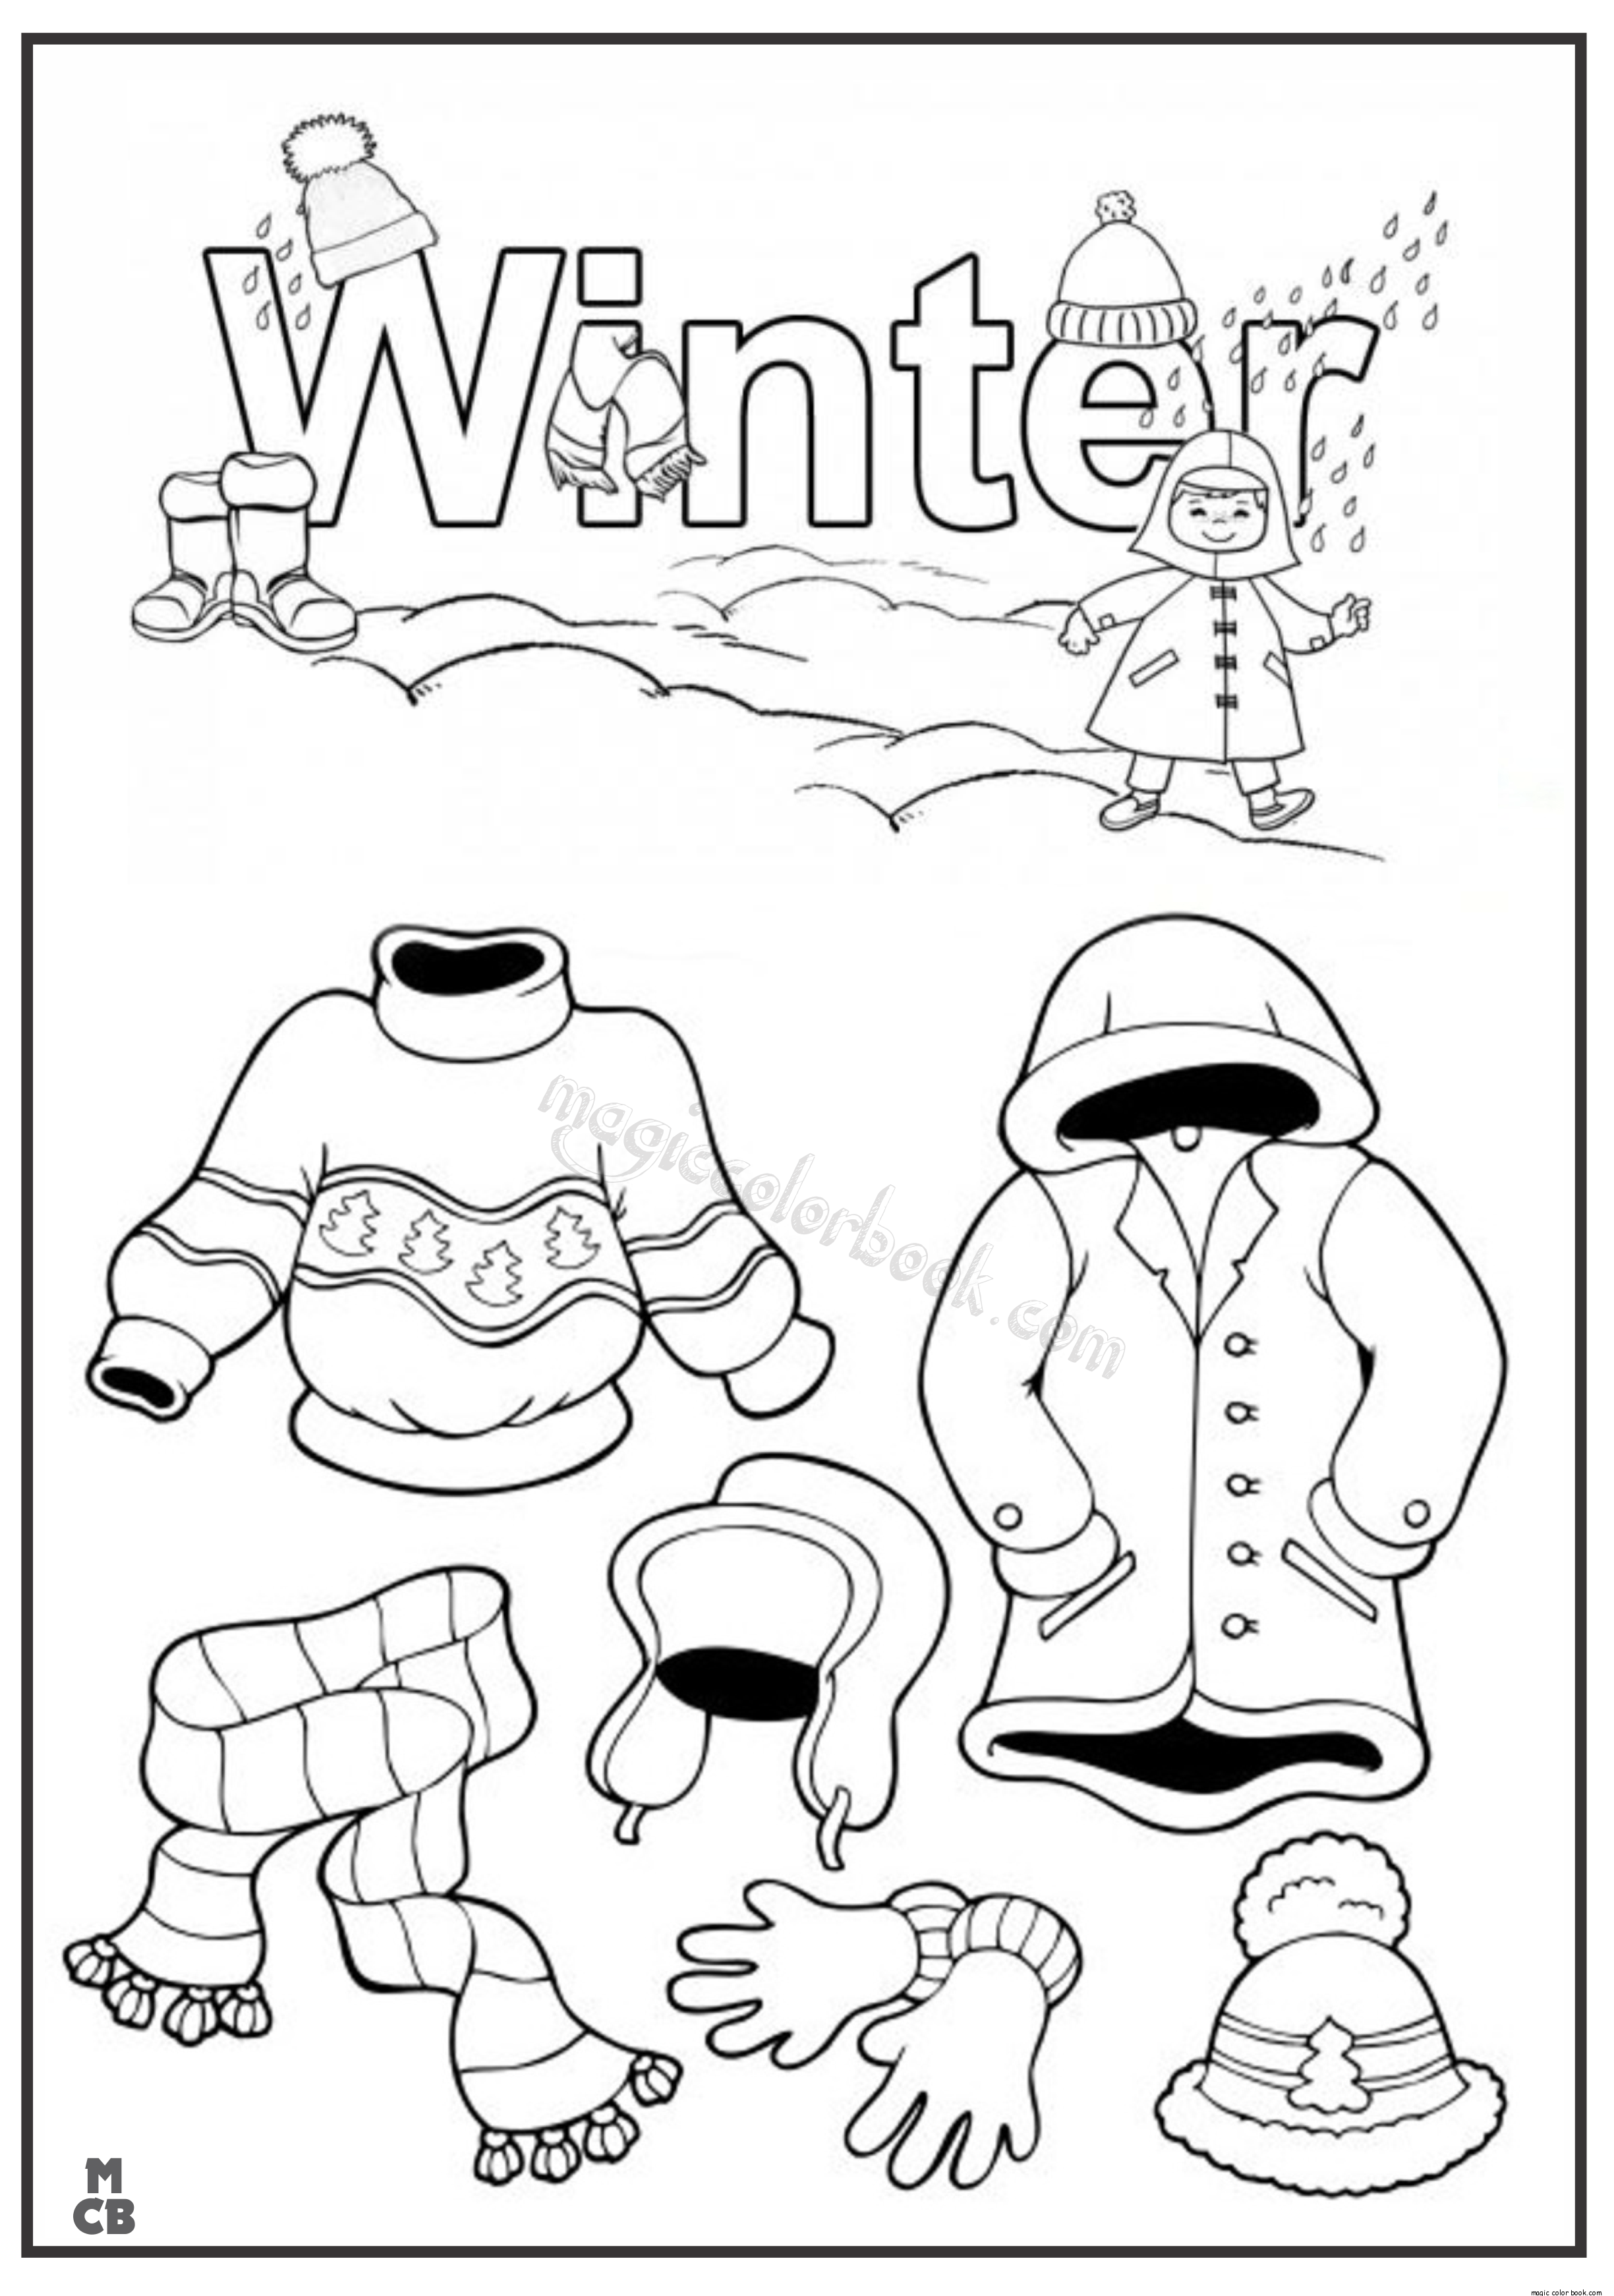 Winter Clothes Coloring Pages At Getdrawings